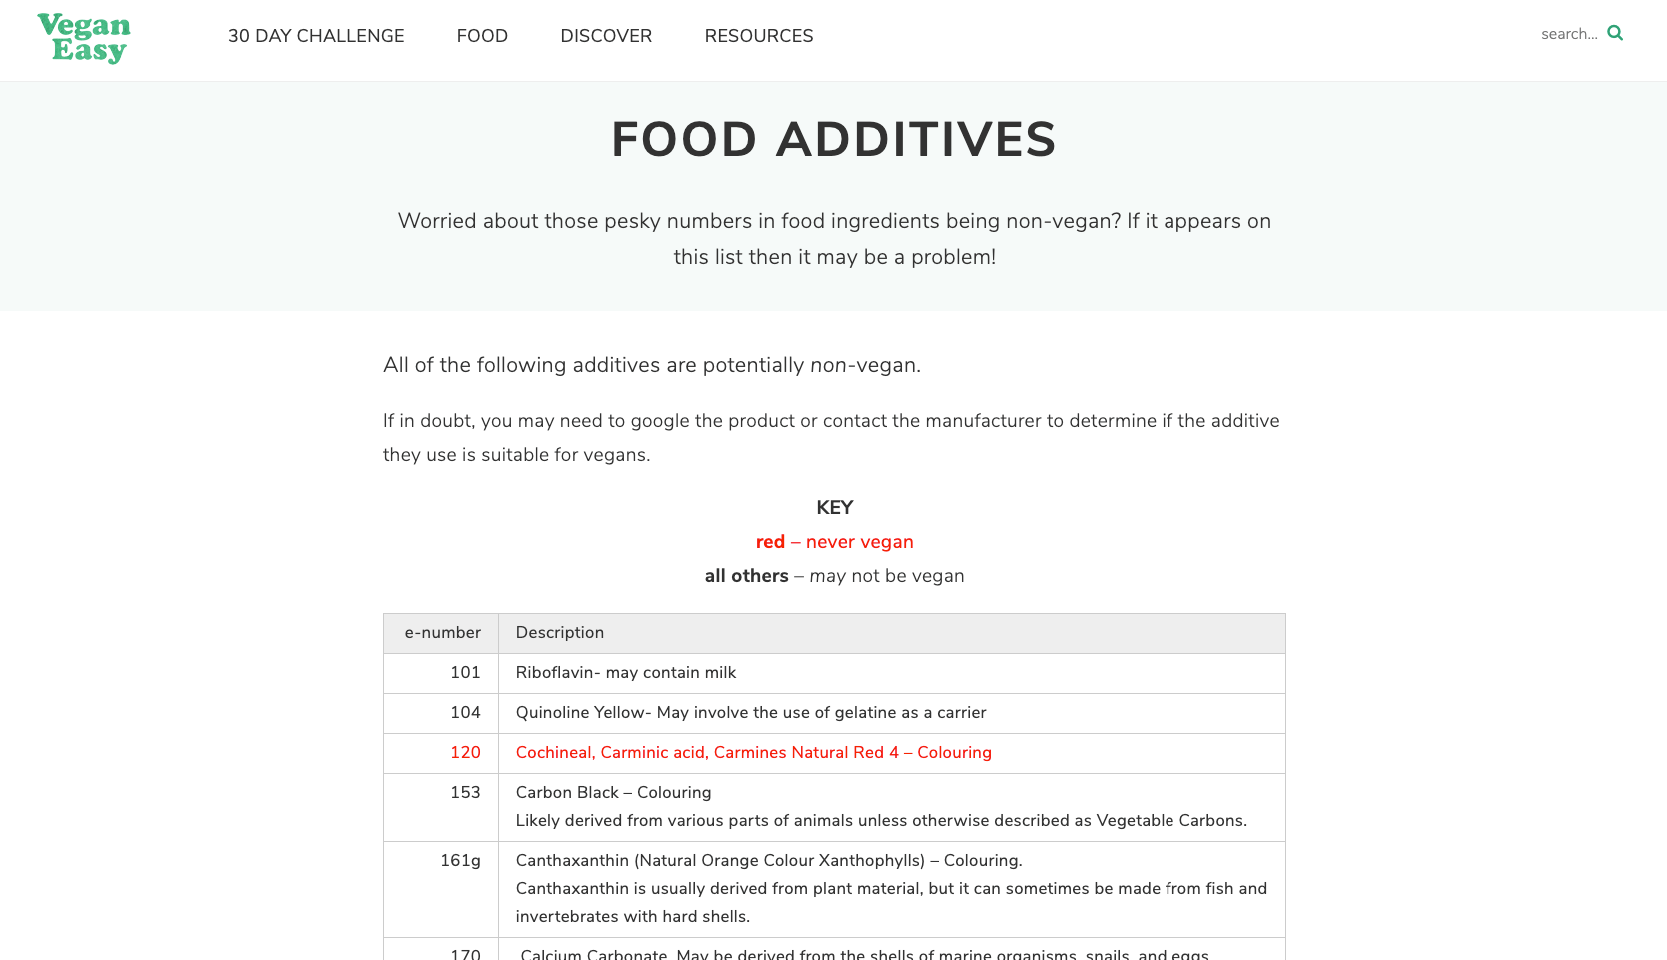 Food additives you should know about when going vegan